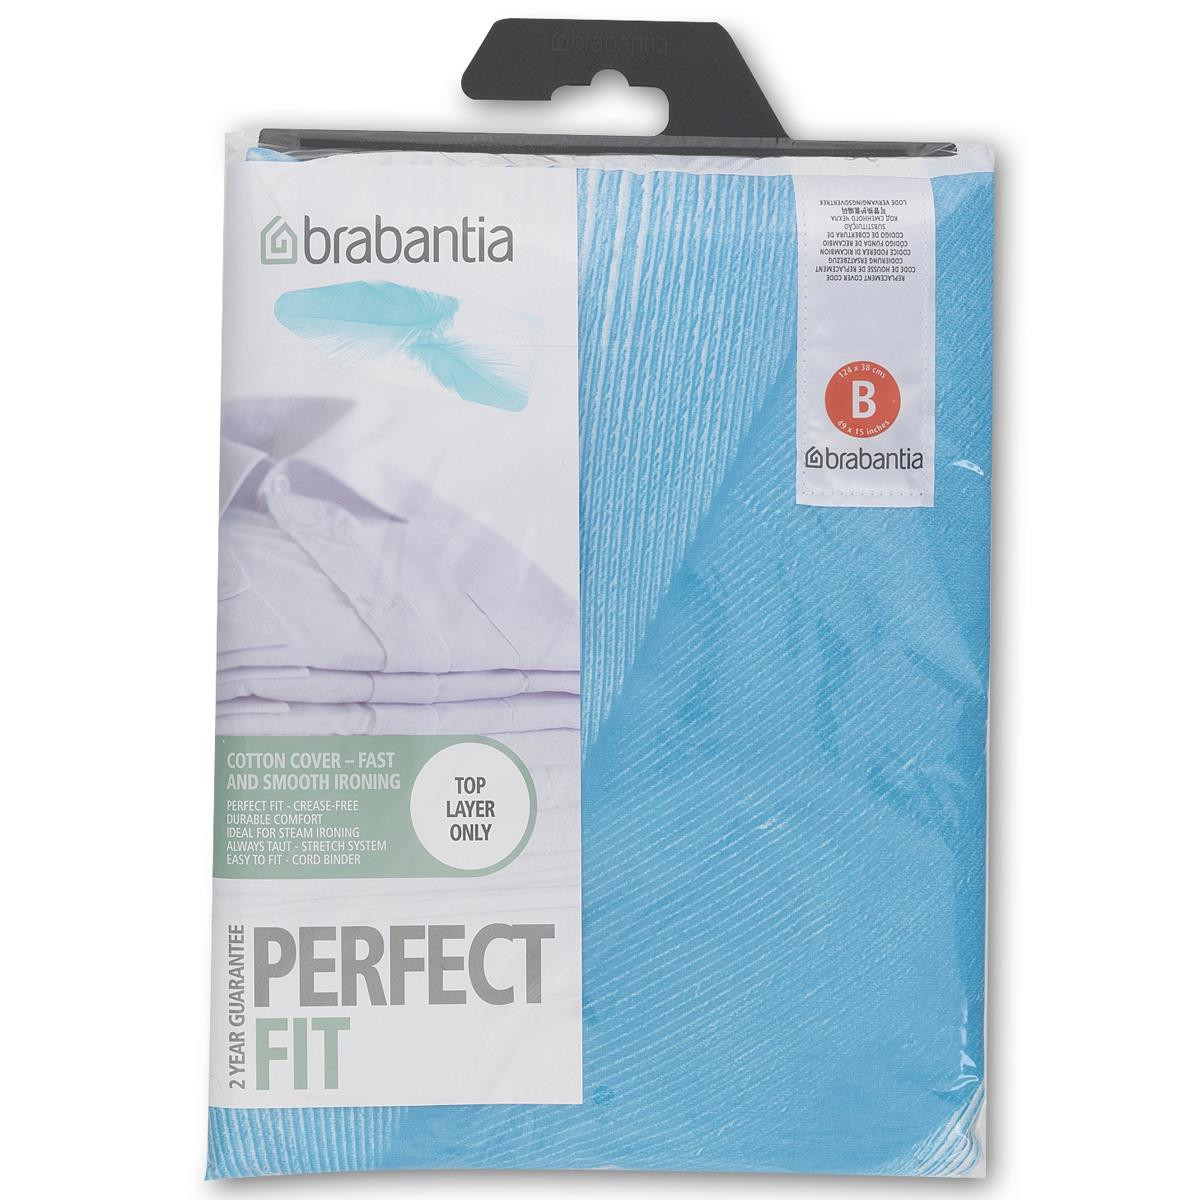 Brabantia Size B Ironing Board Cover Assorted Designs